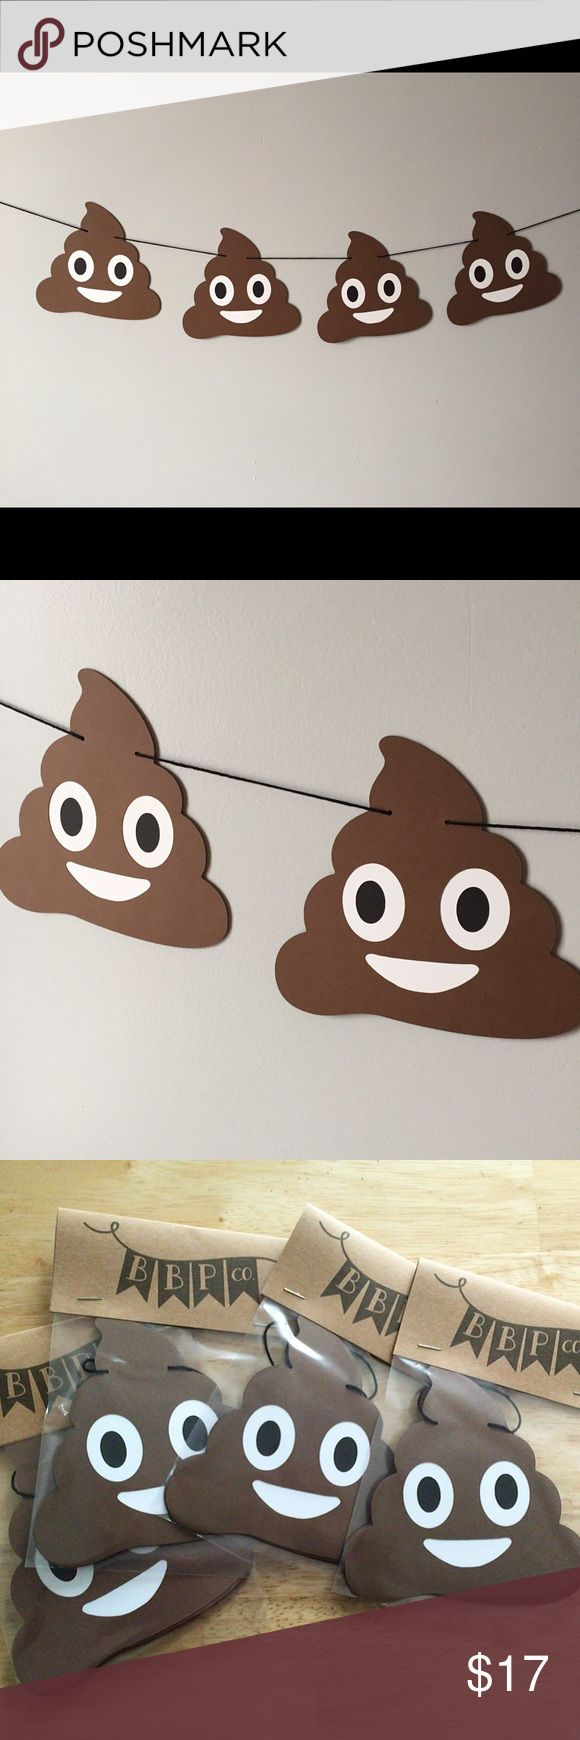 Poop Emoji Banner 4 4-inch emojis cut from heavyweight cardstock and strung on black twine Other